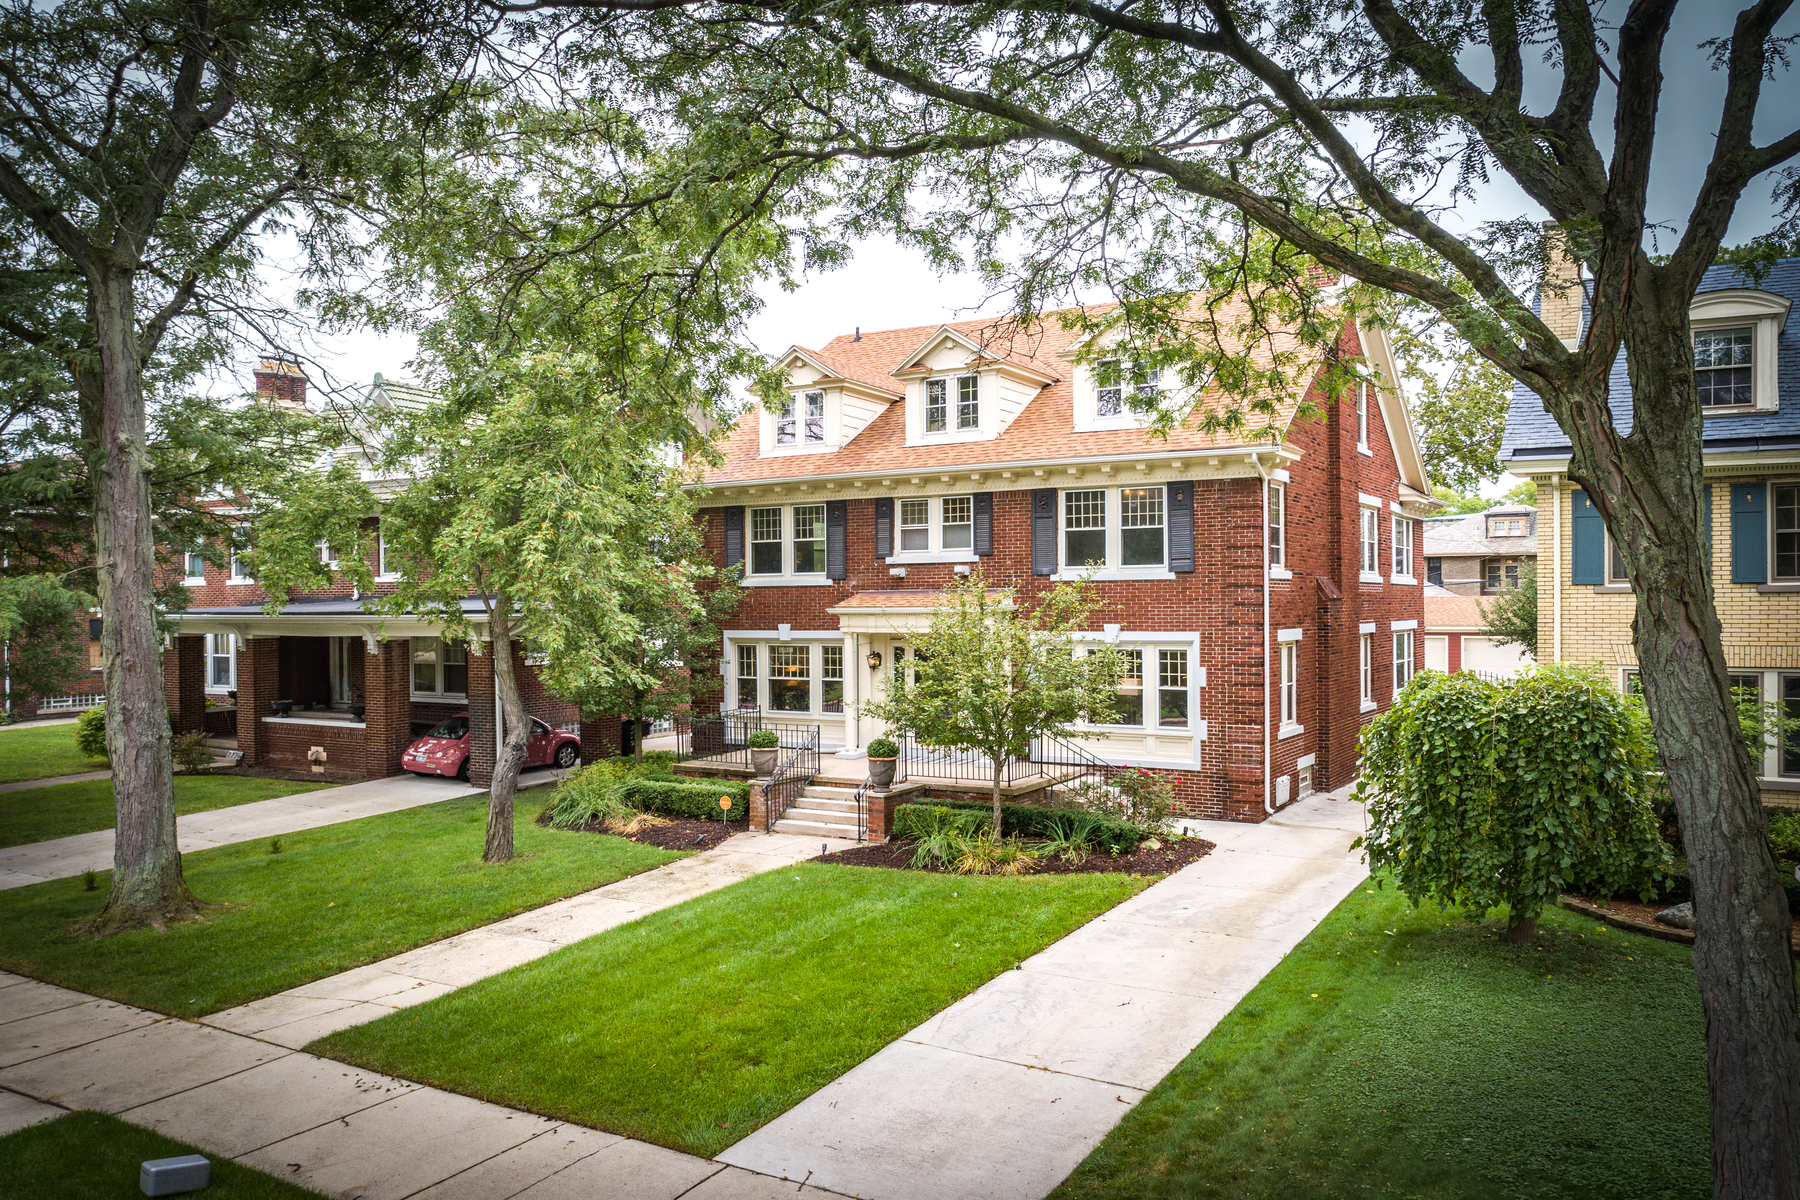 Single Family Homes for Sale at Detroit 2224 Chicago Boulevard Detroit, Michigan 48206 United States